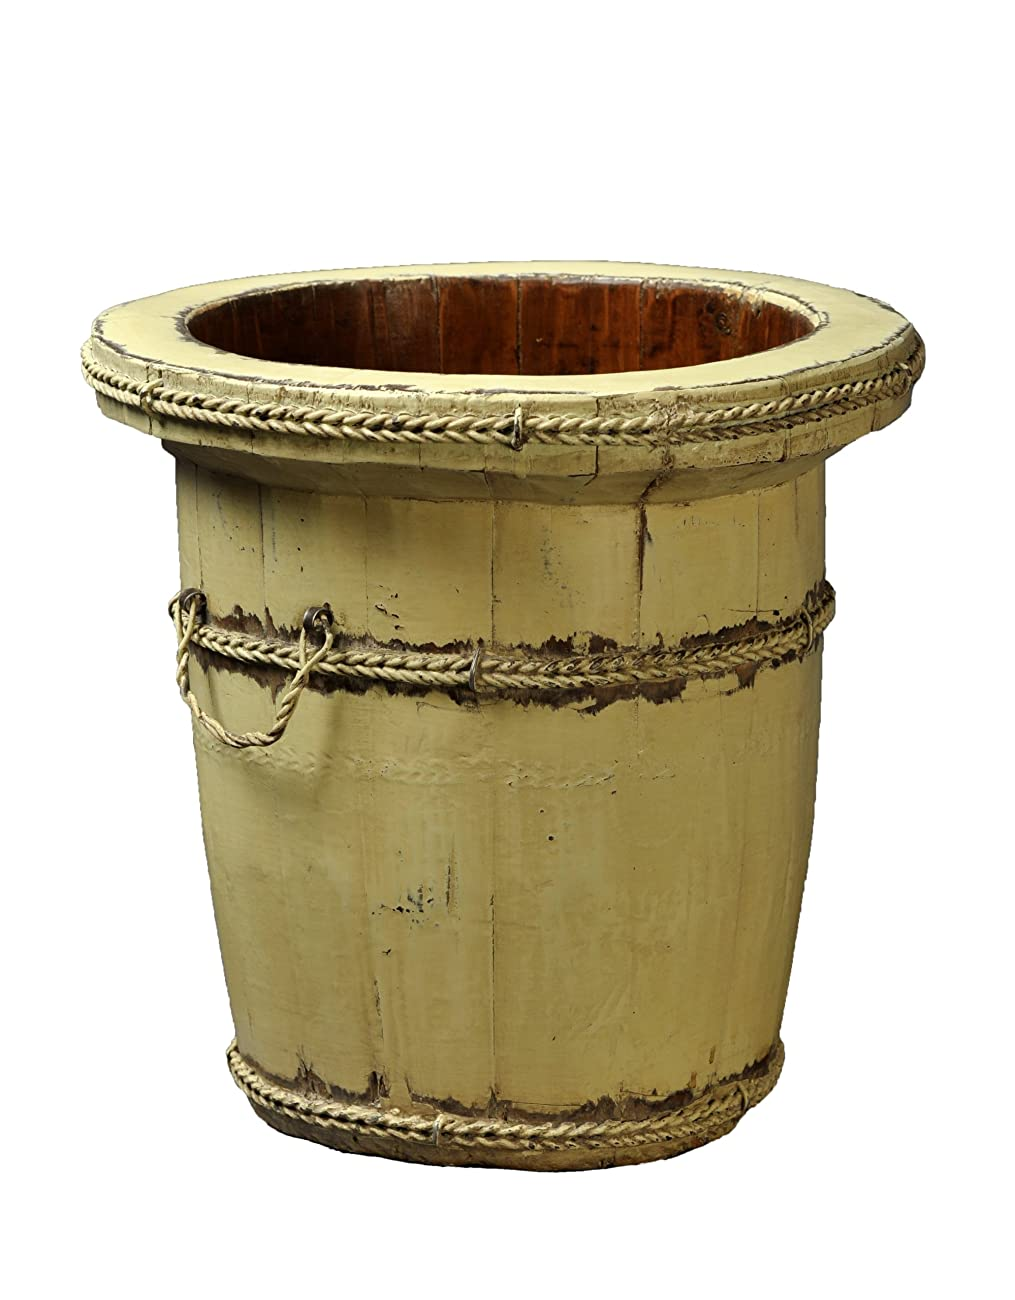 Antique Revival Wooden Planter Bucket, Butter Finish 0